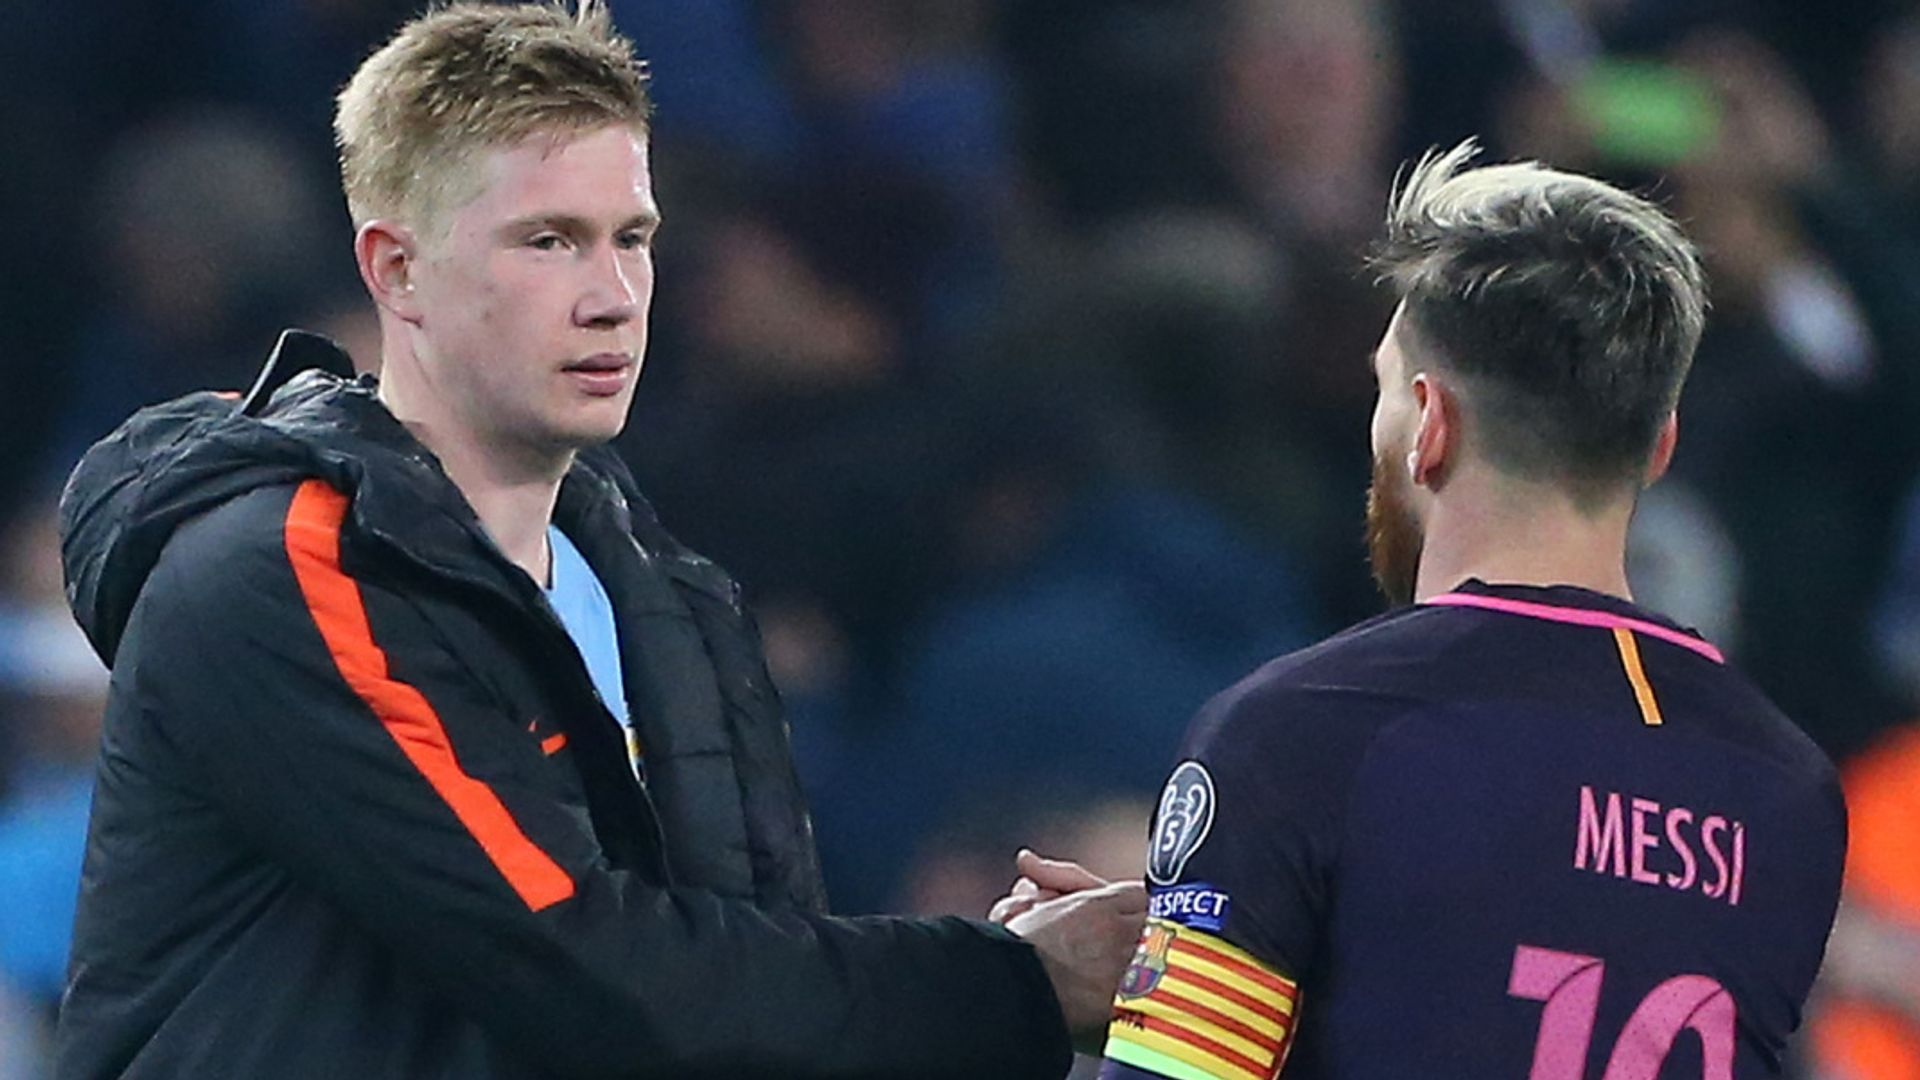 Messi to City? De Bruyne: 'I don't really care'